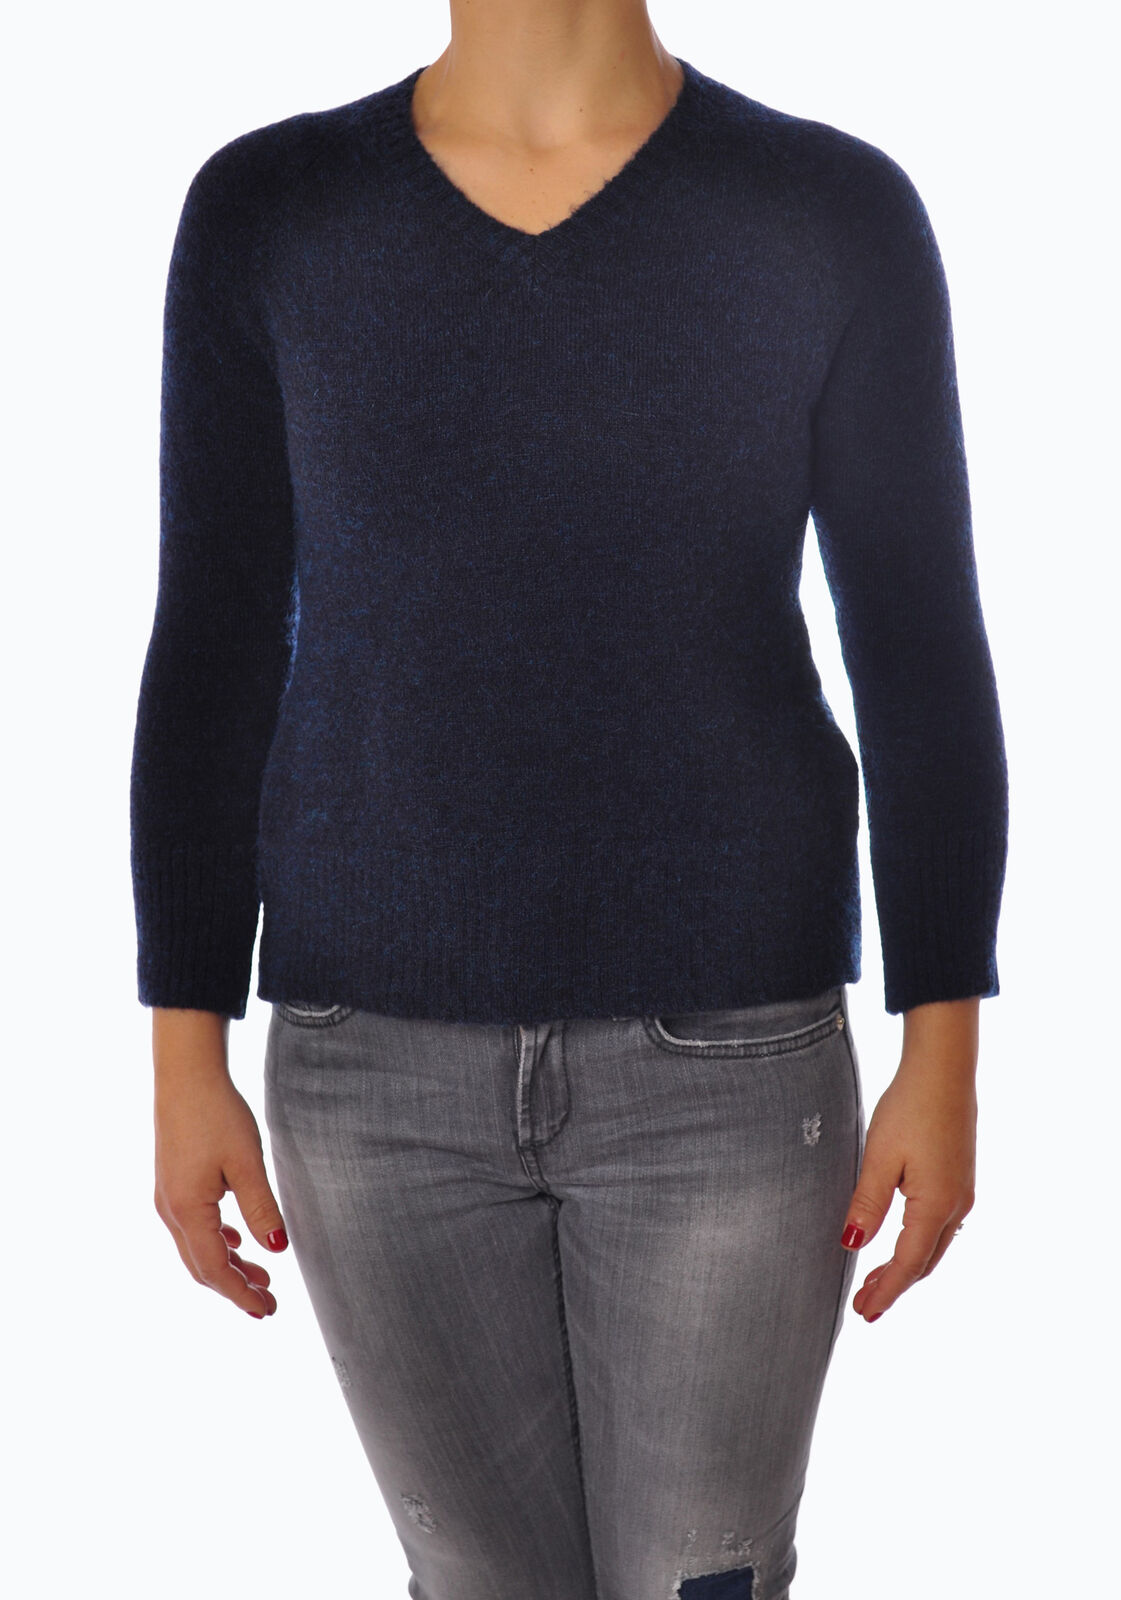 Pink Memories  -  Sweaters - Female - bluee - 2897101A183924